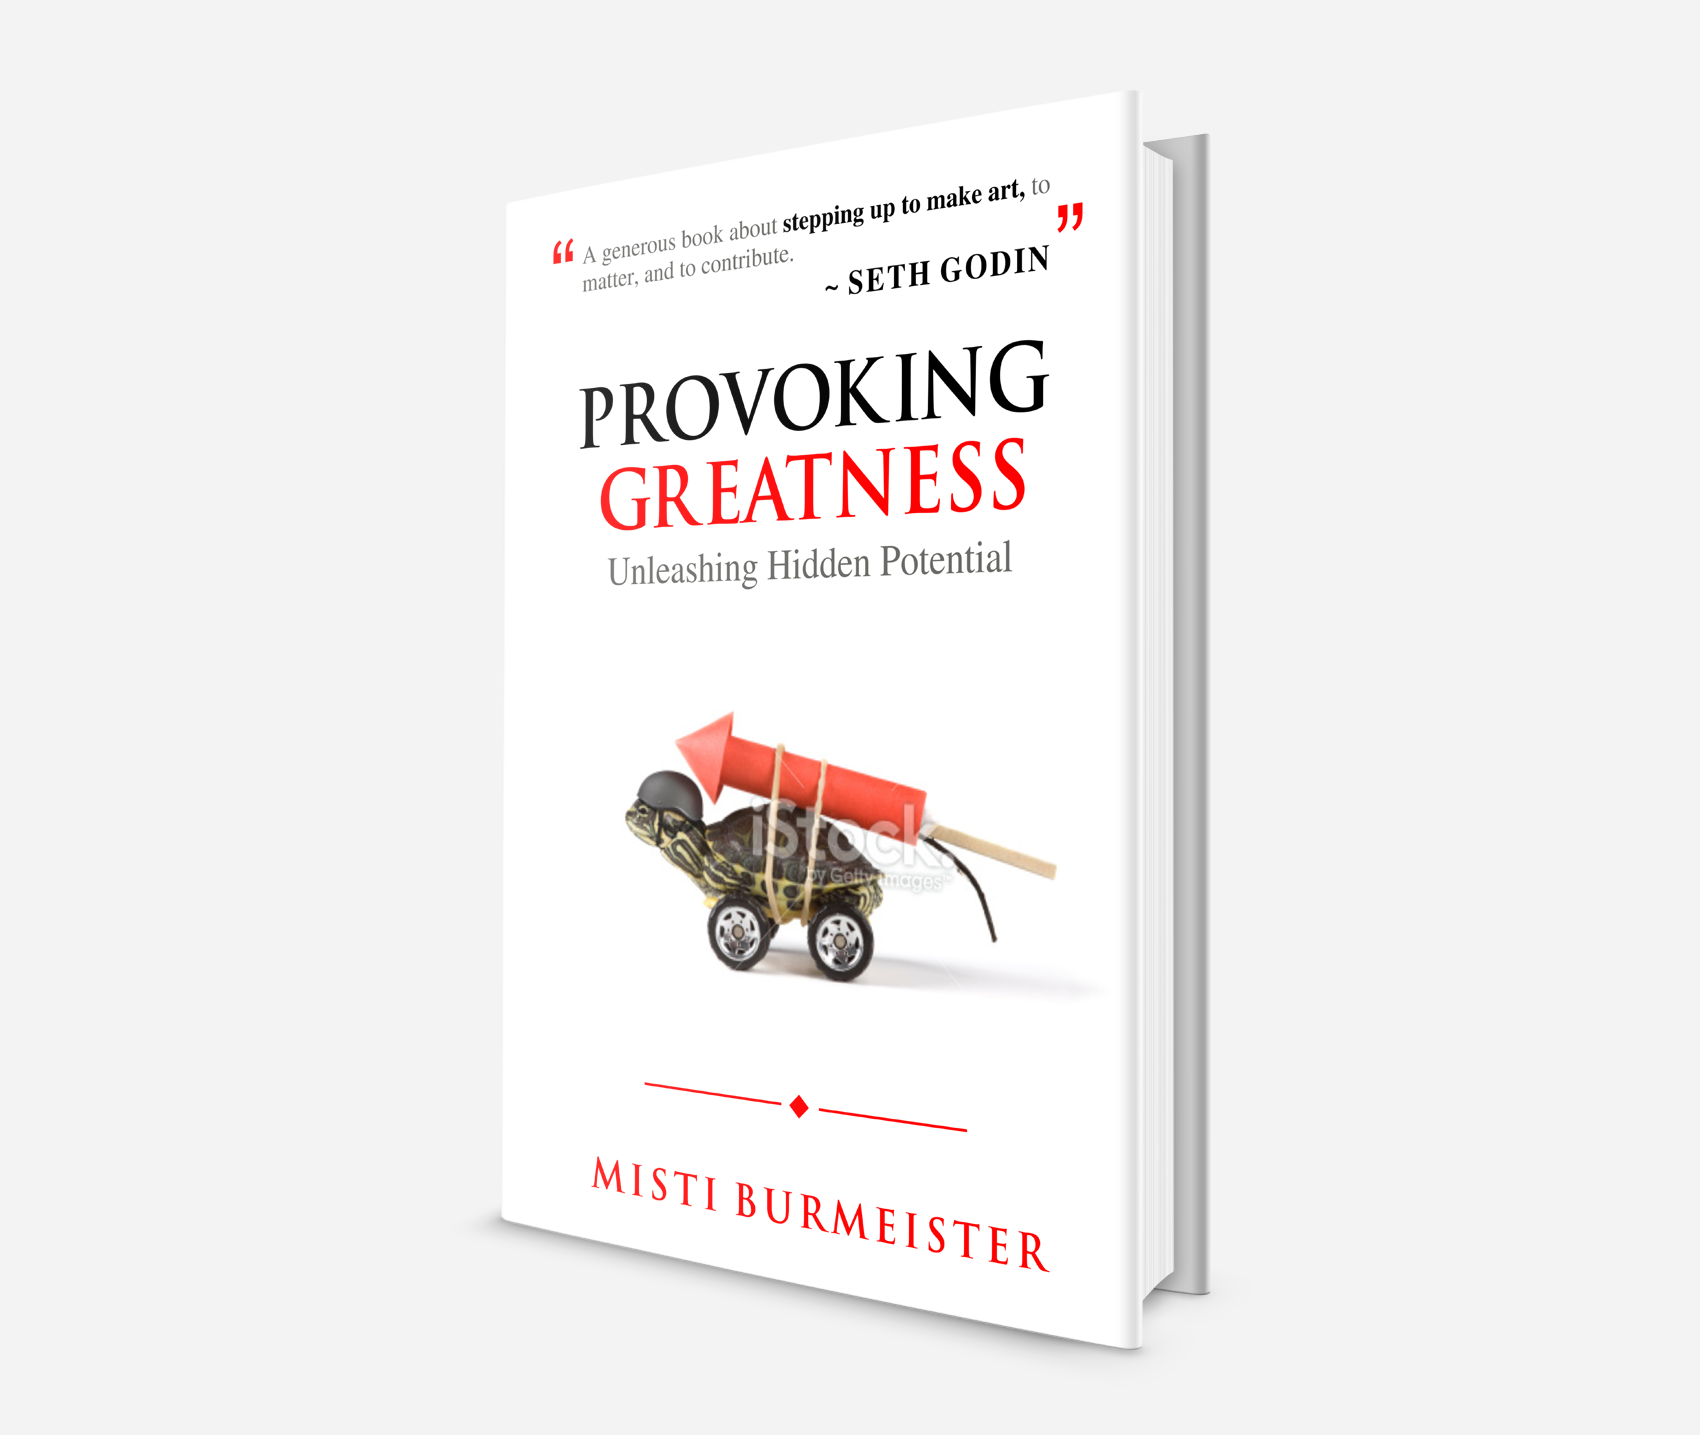 Create a Provoking Cover for a book that challenges conventional wisdom